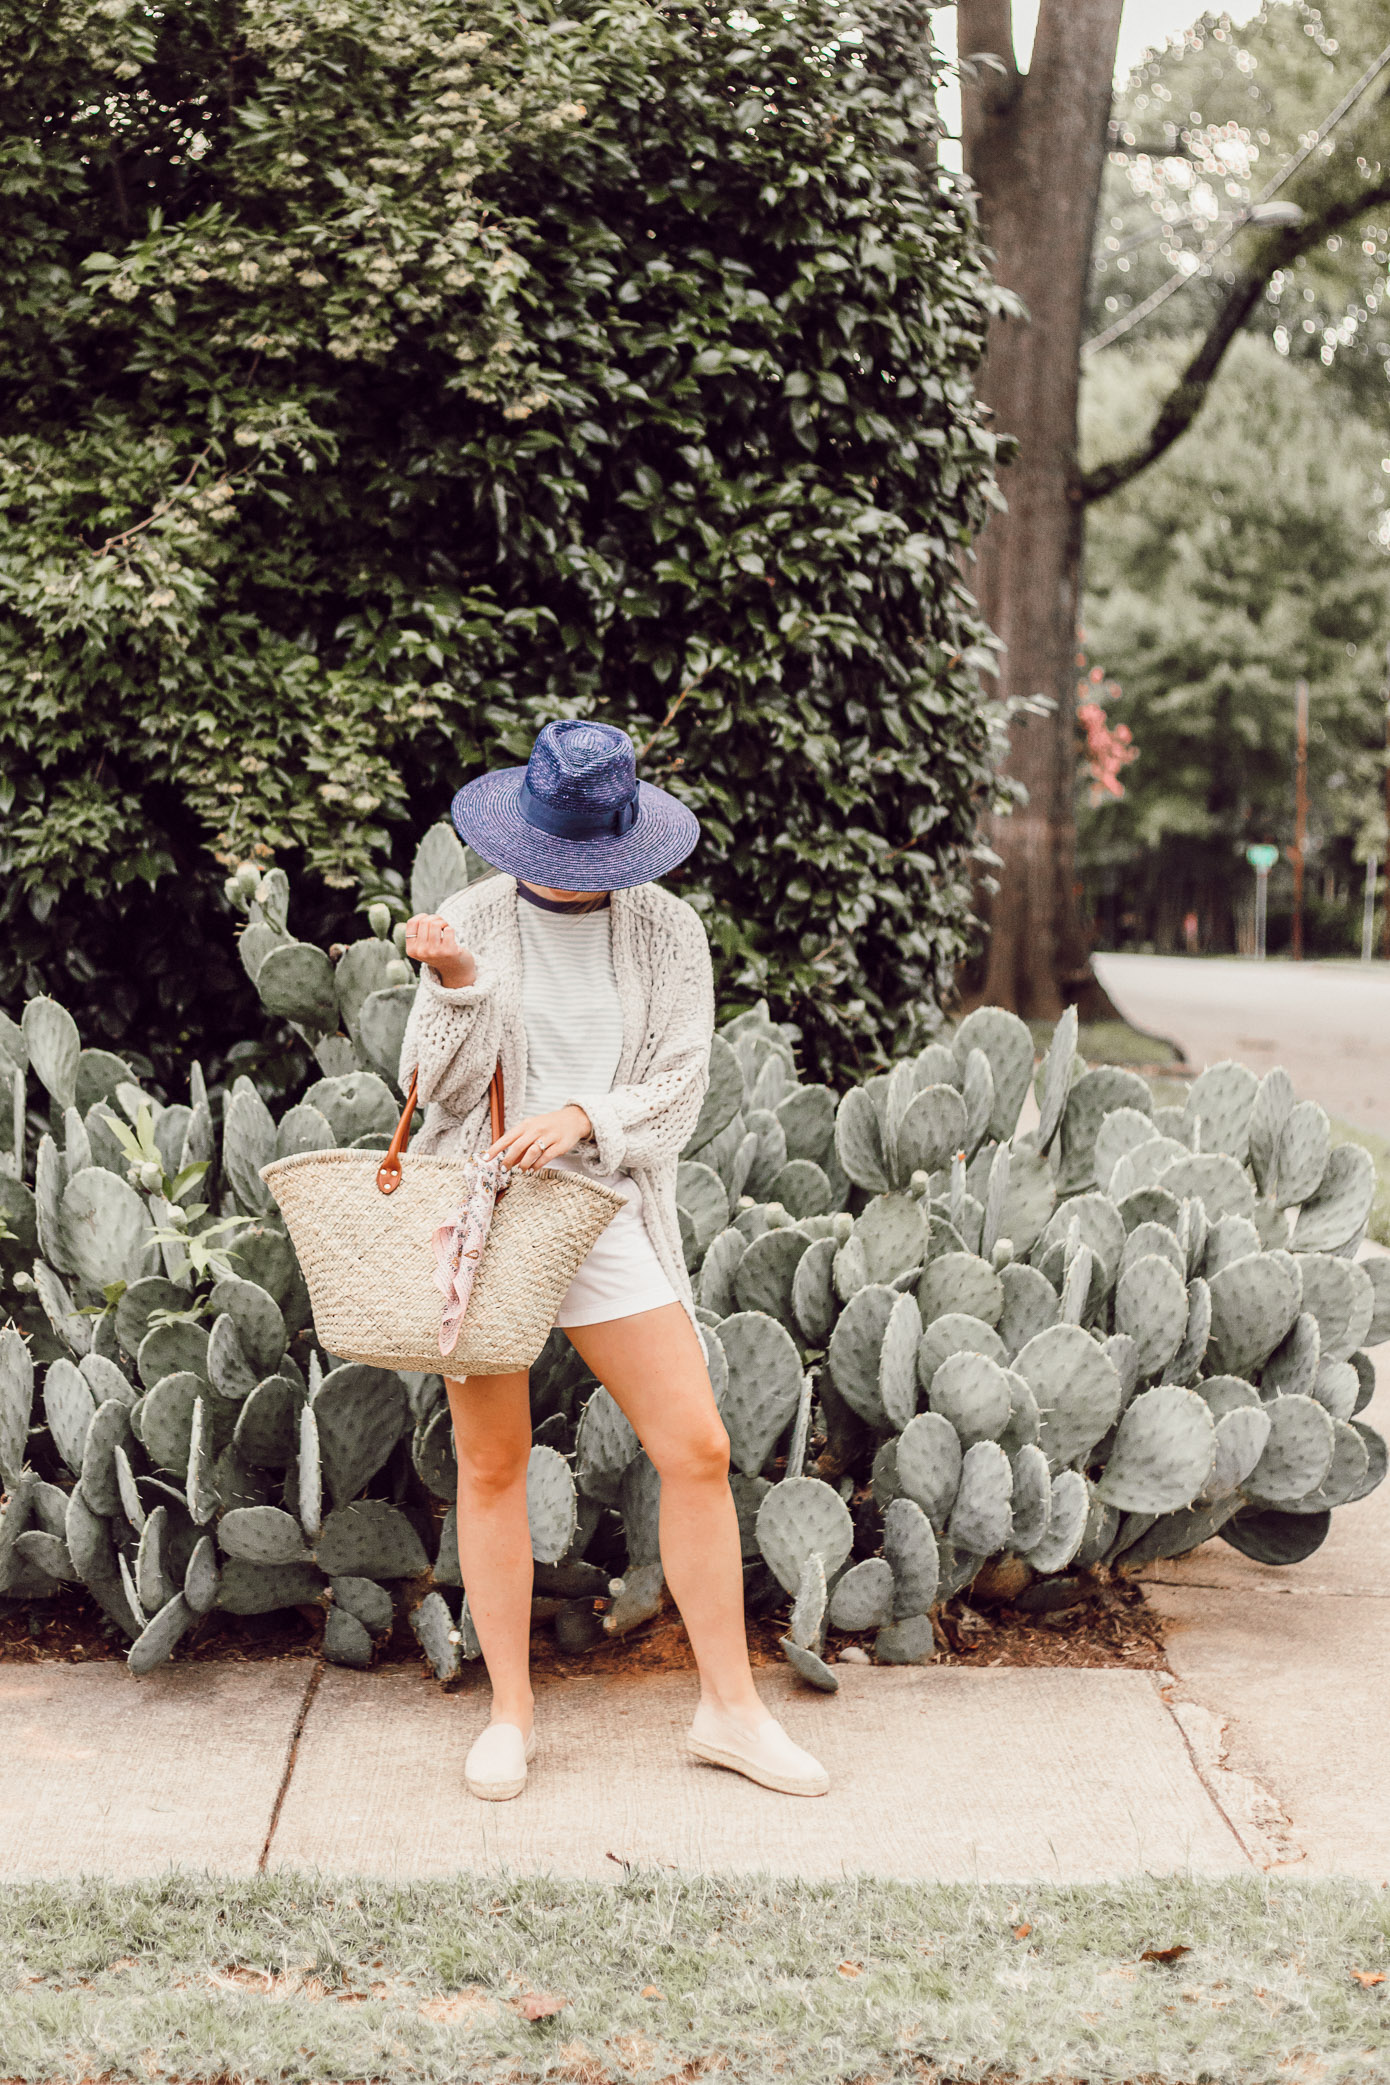 Navy Straw Hat, Free People Saturday Morning Cardigan, Green and White Striped Tee | Casual Late Summer Outfit Idea featured on Louella Reese Blog